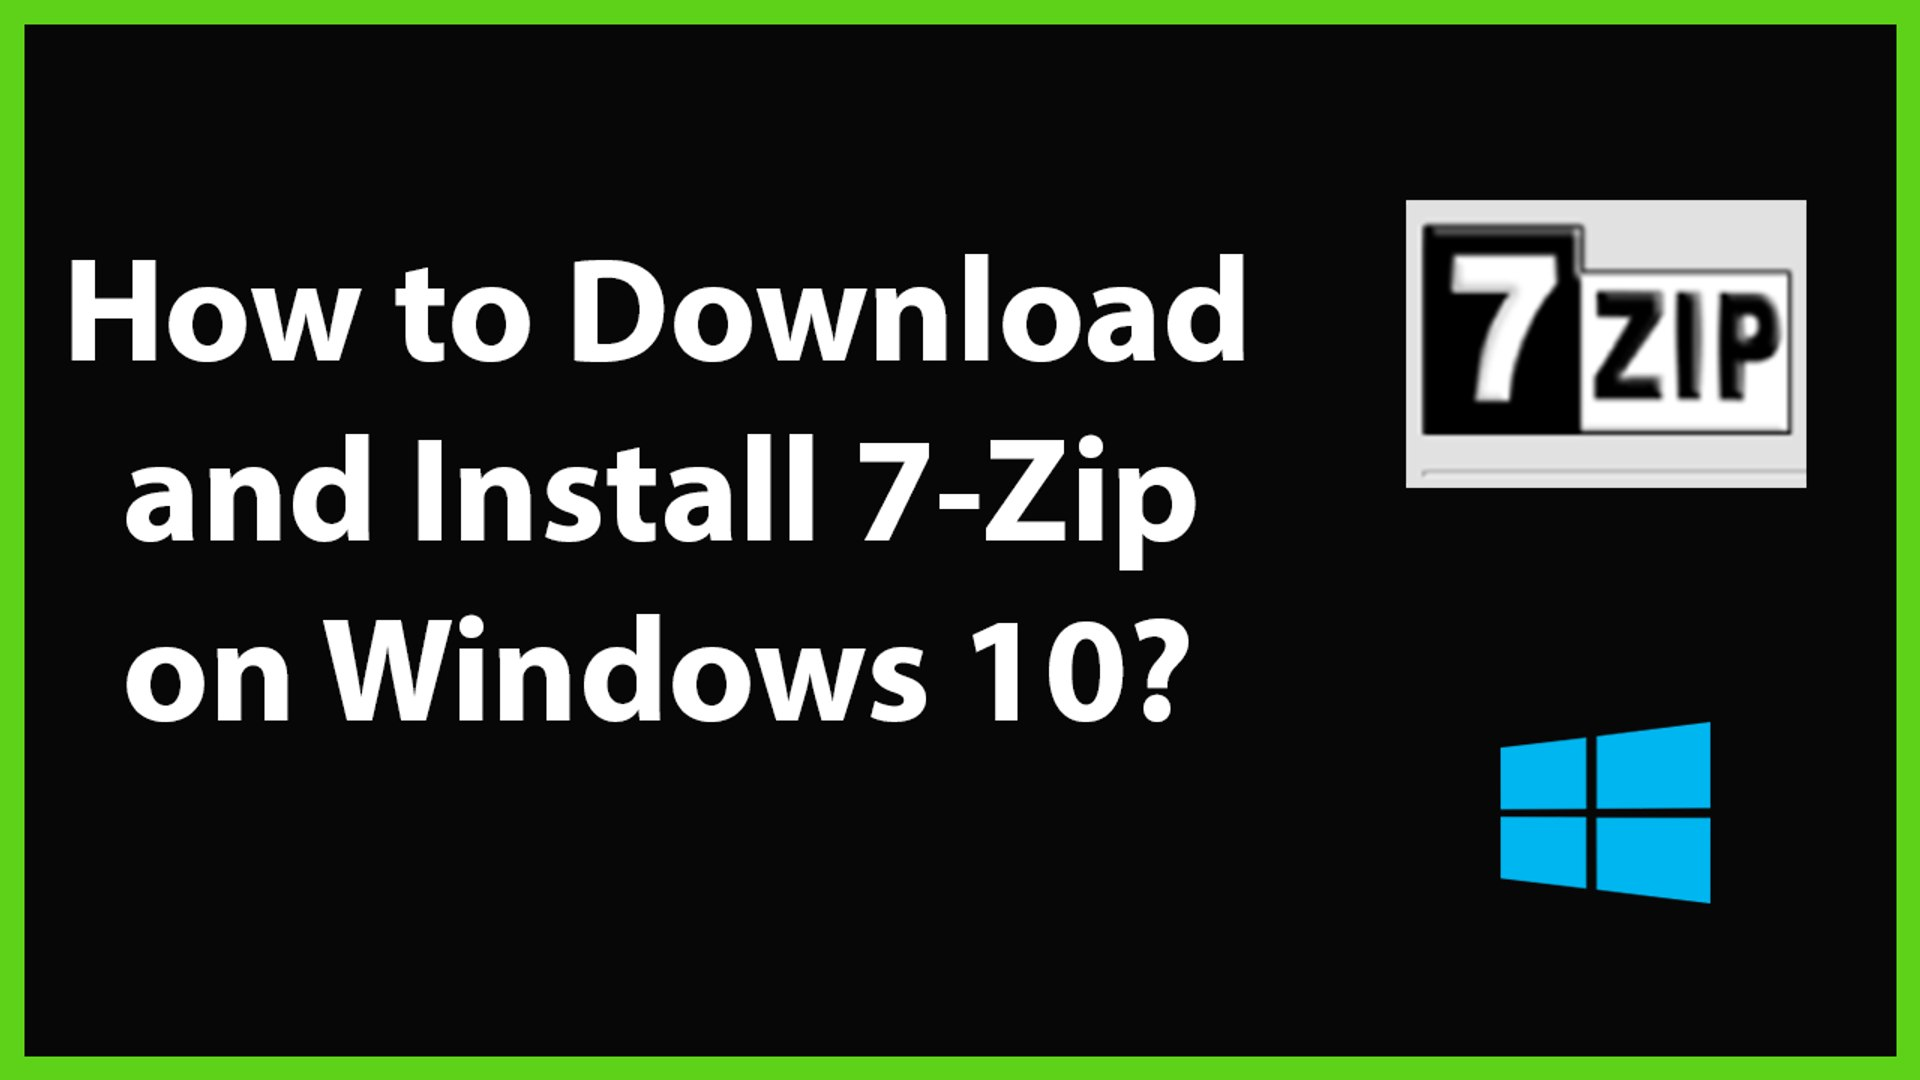 How to Download and Install 7-Zip on Windows 10?